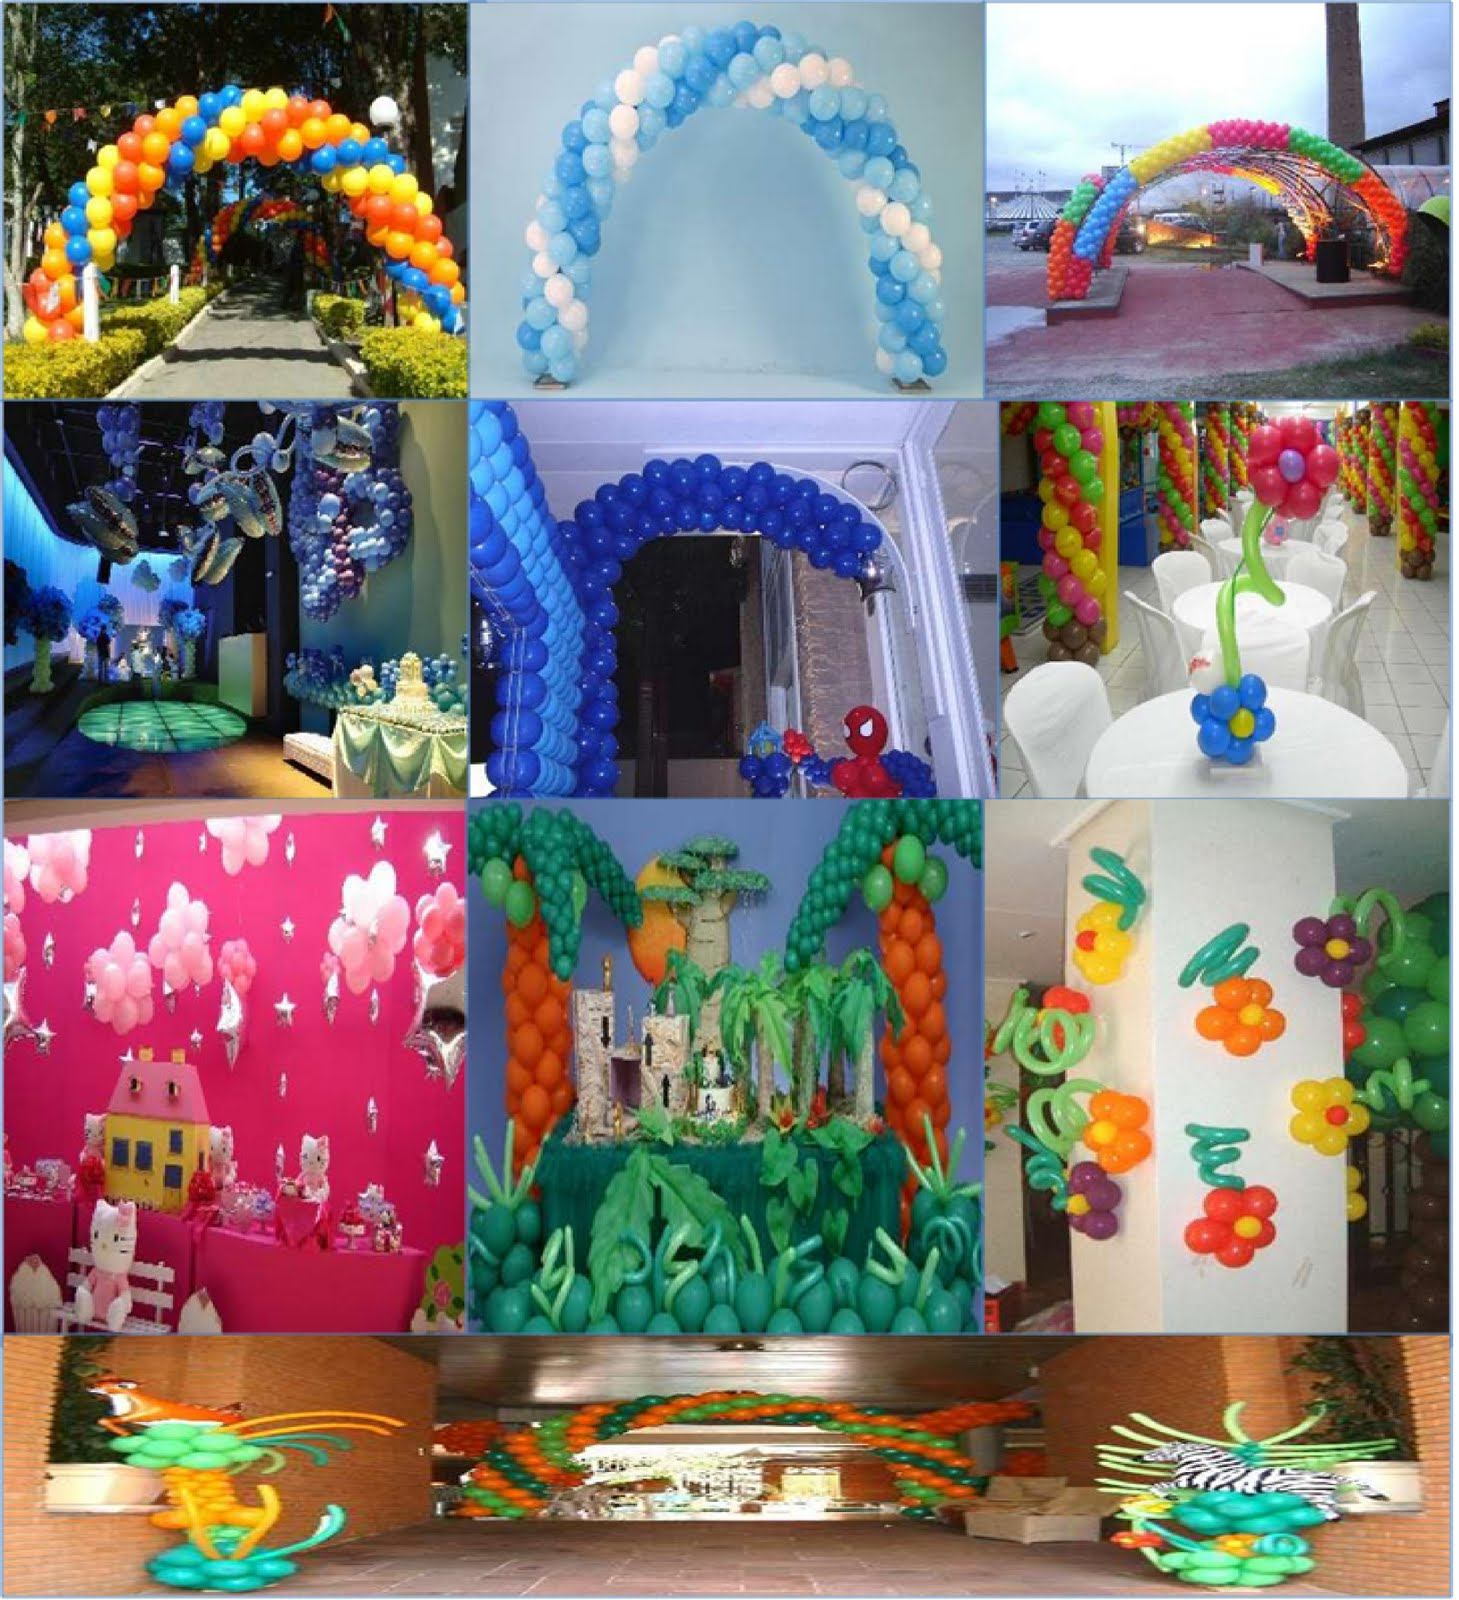 Decoracion cumplea os adultos for Globos decoracion fiestas